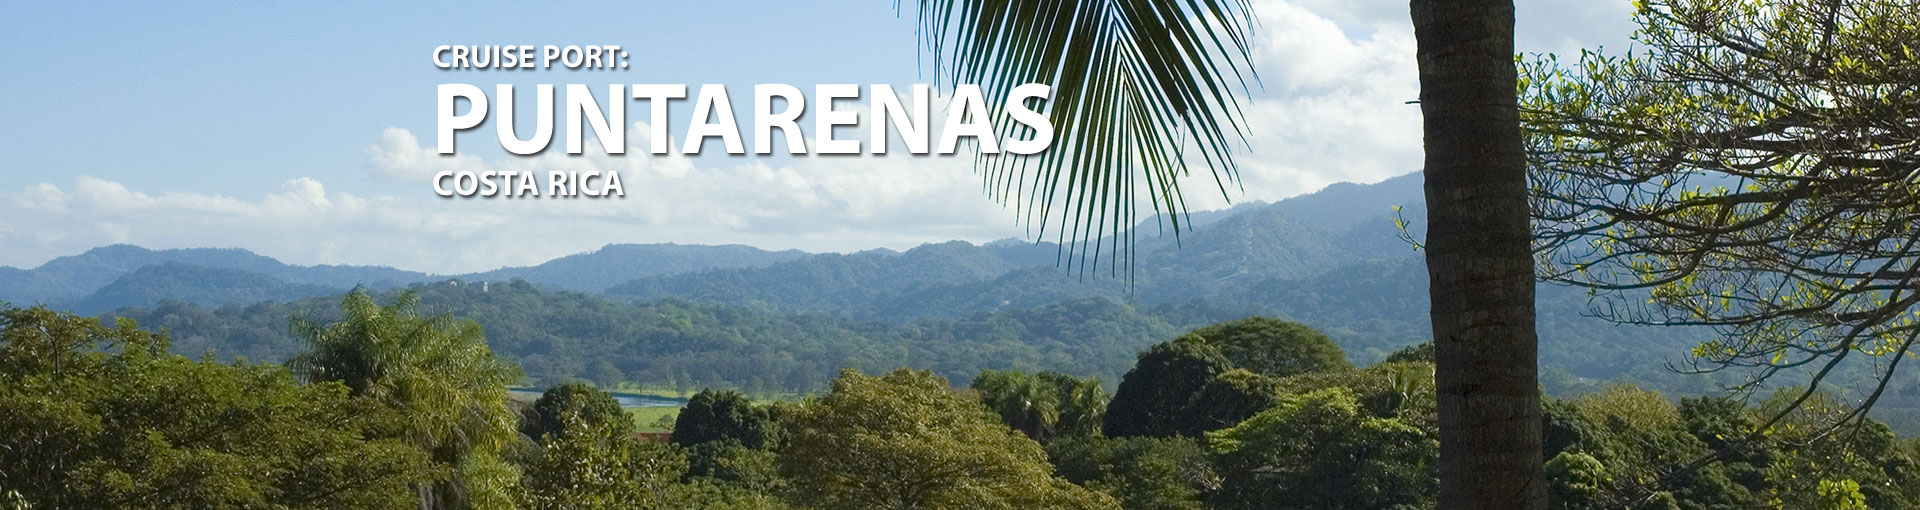 Cruises to Puntarenas, Costa Rica